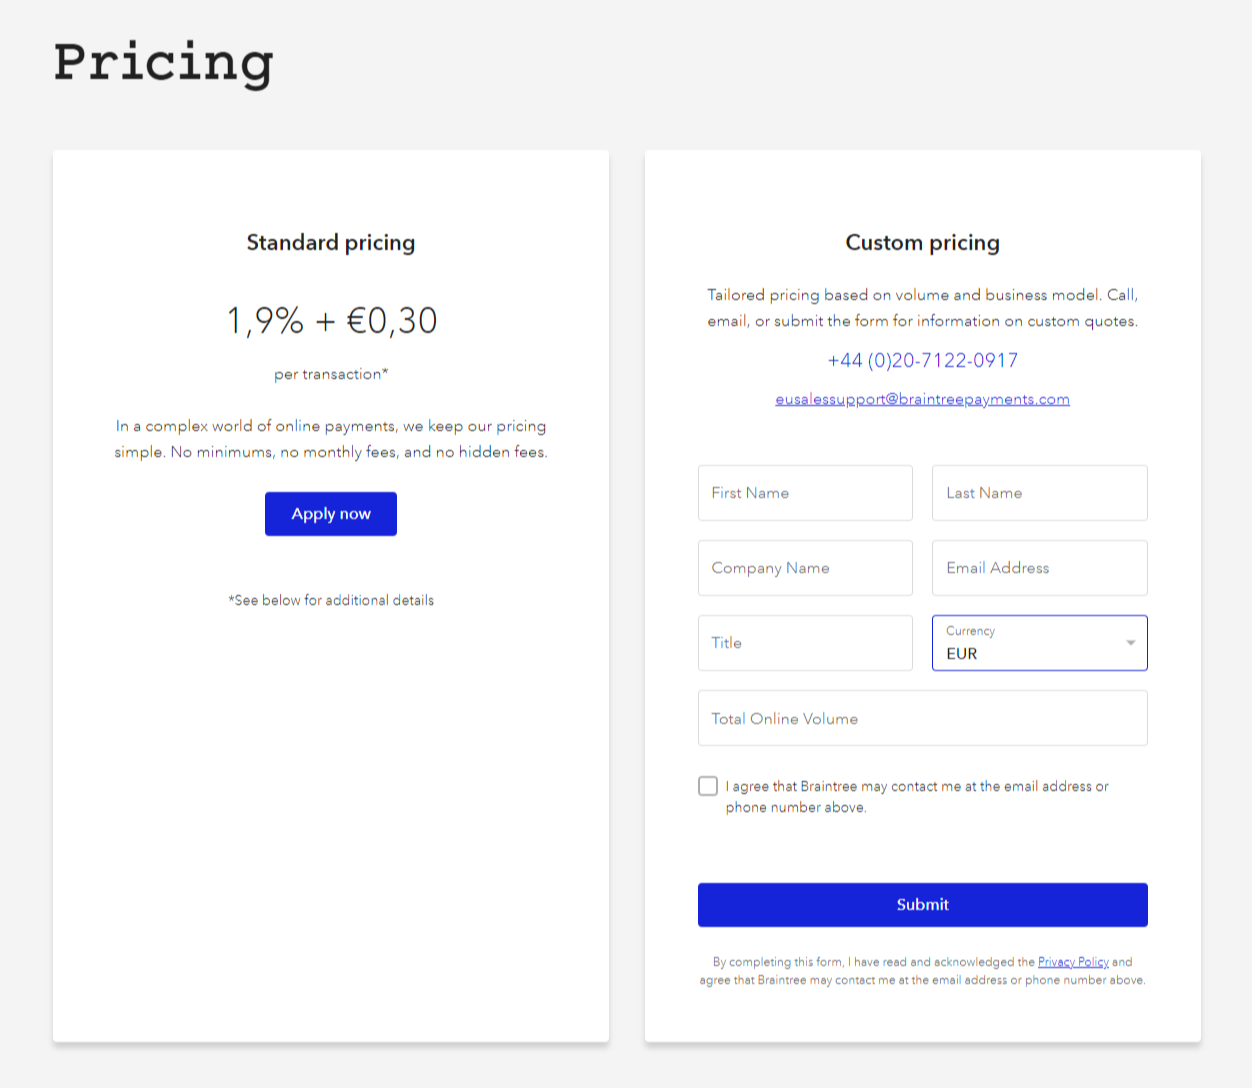 Braintree Payment Processing Tool Pricing Webpage